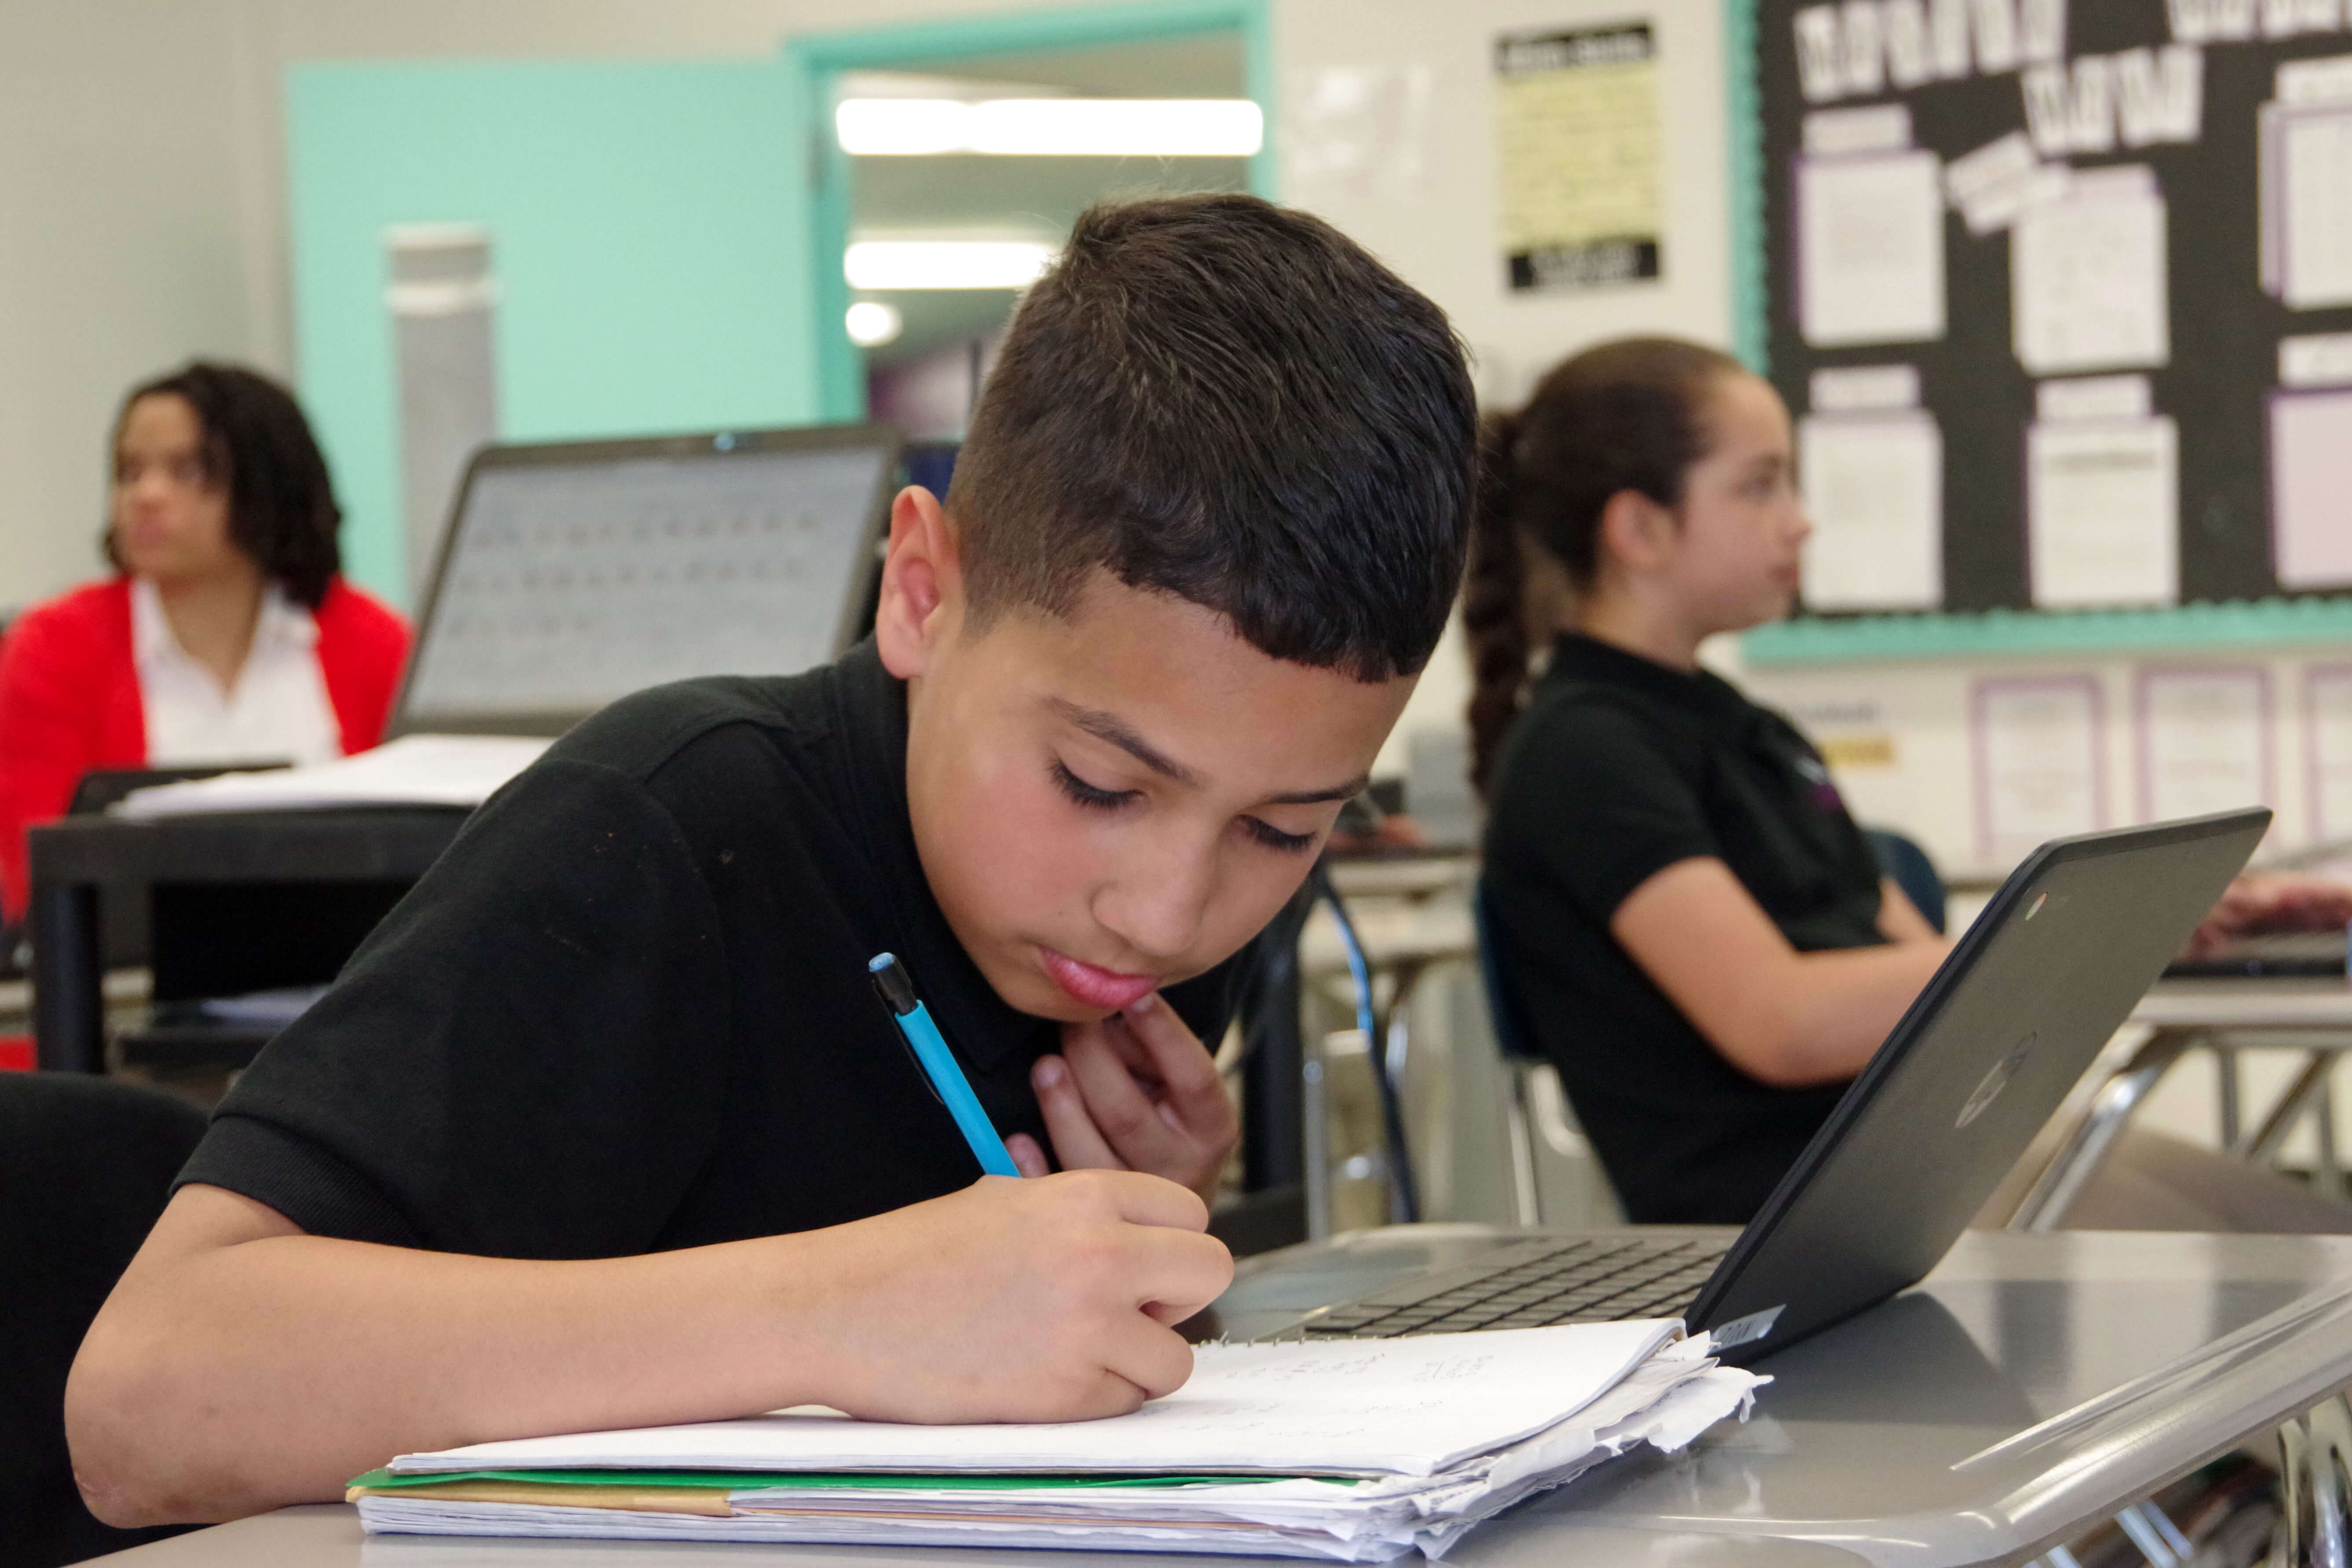 Middle school male student working on a class assignment.